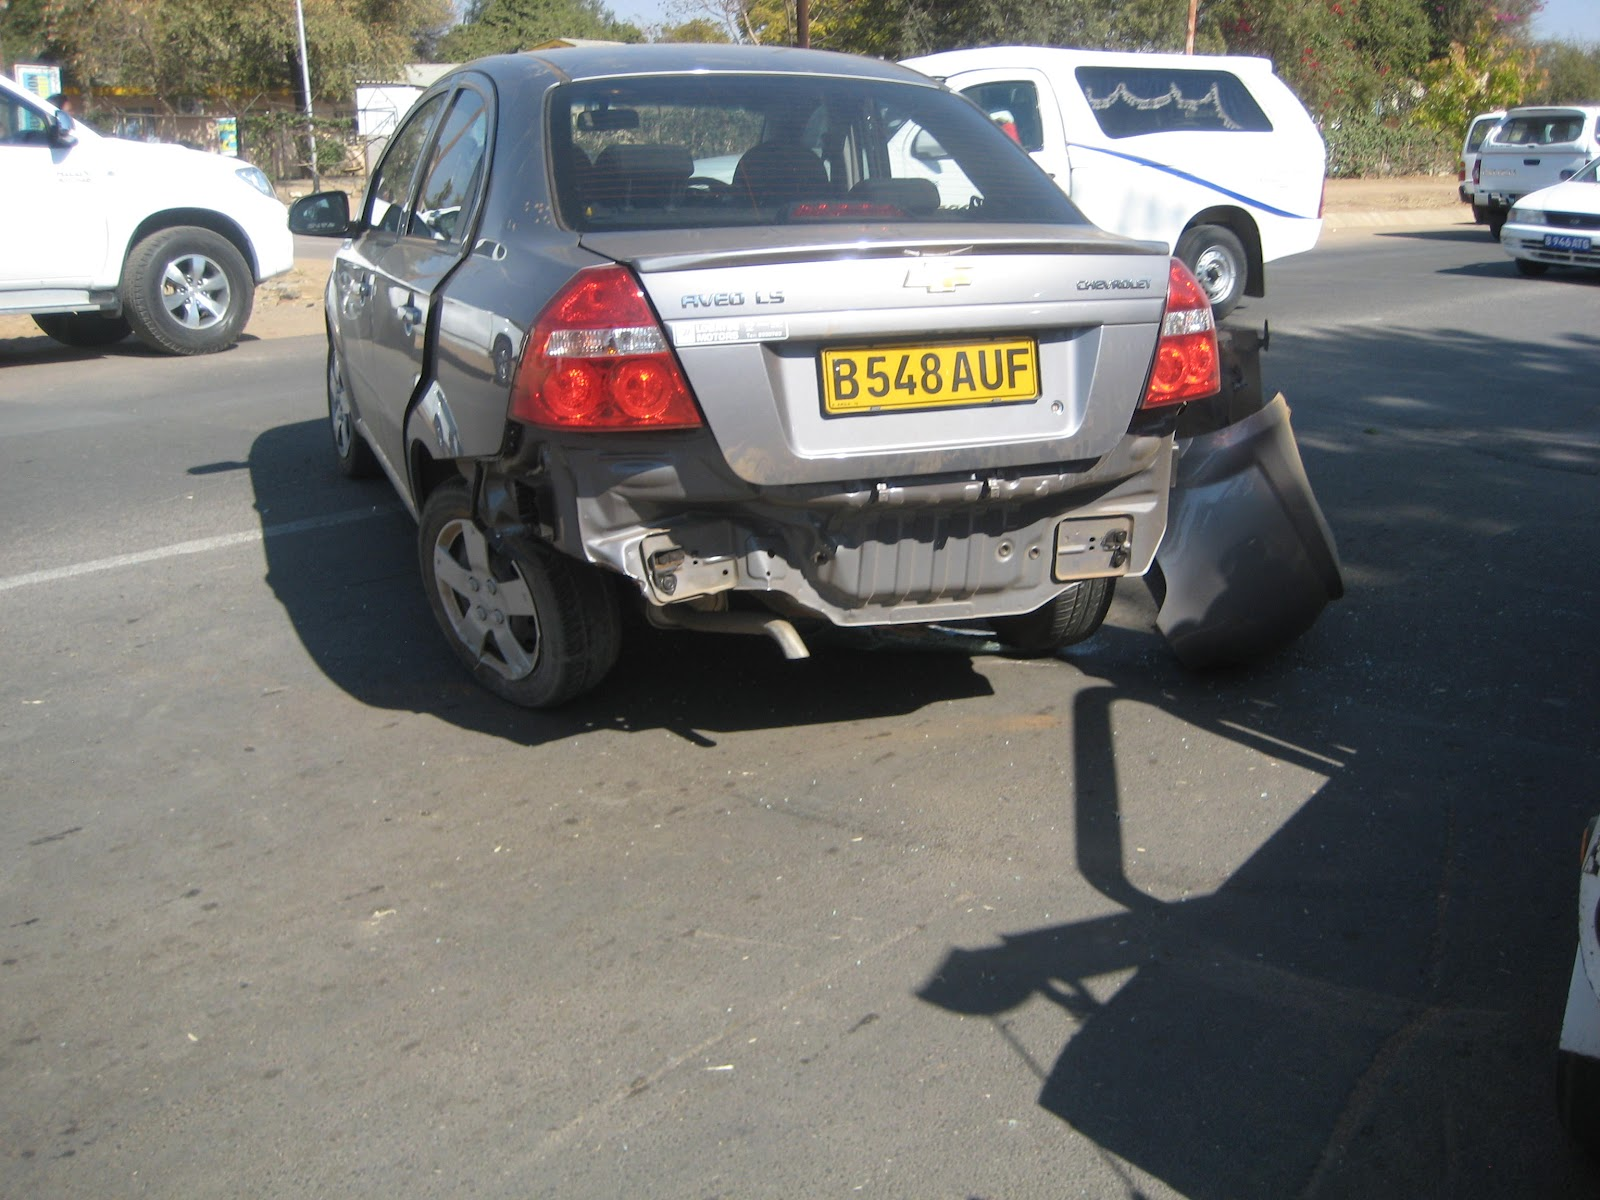 Rands Mission Car Accident